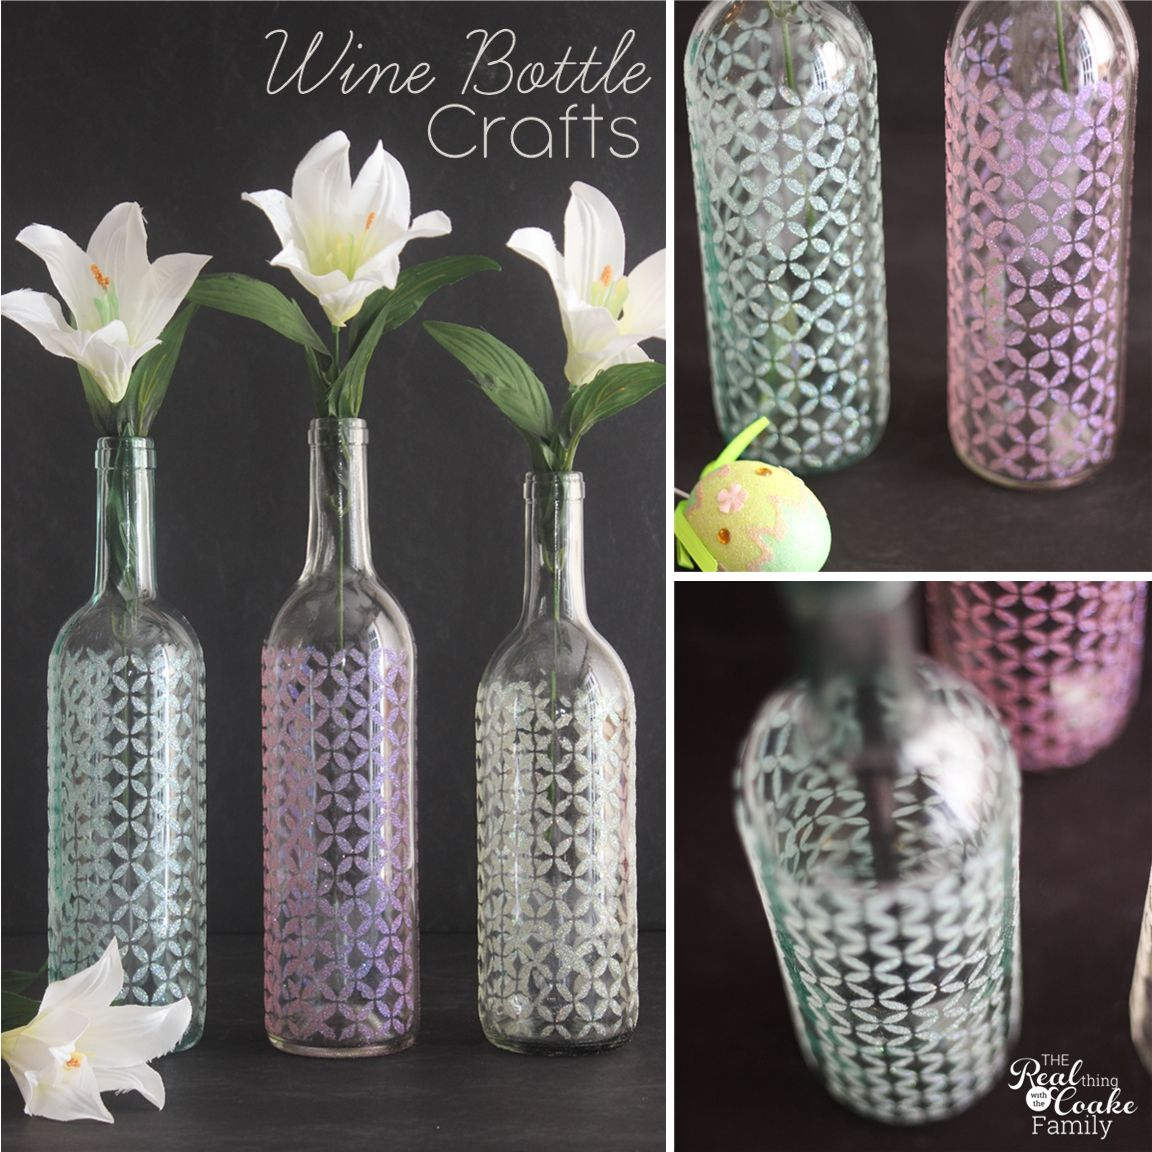 16+ Stencils for painting on glass bottles ideas in 2021